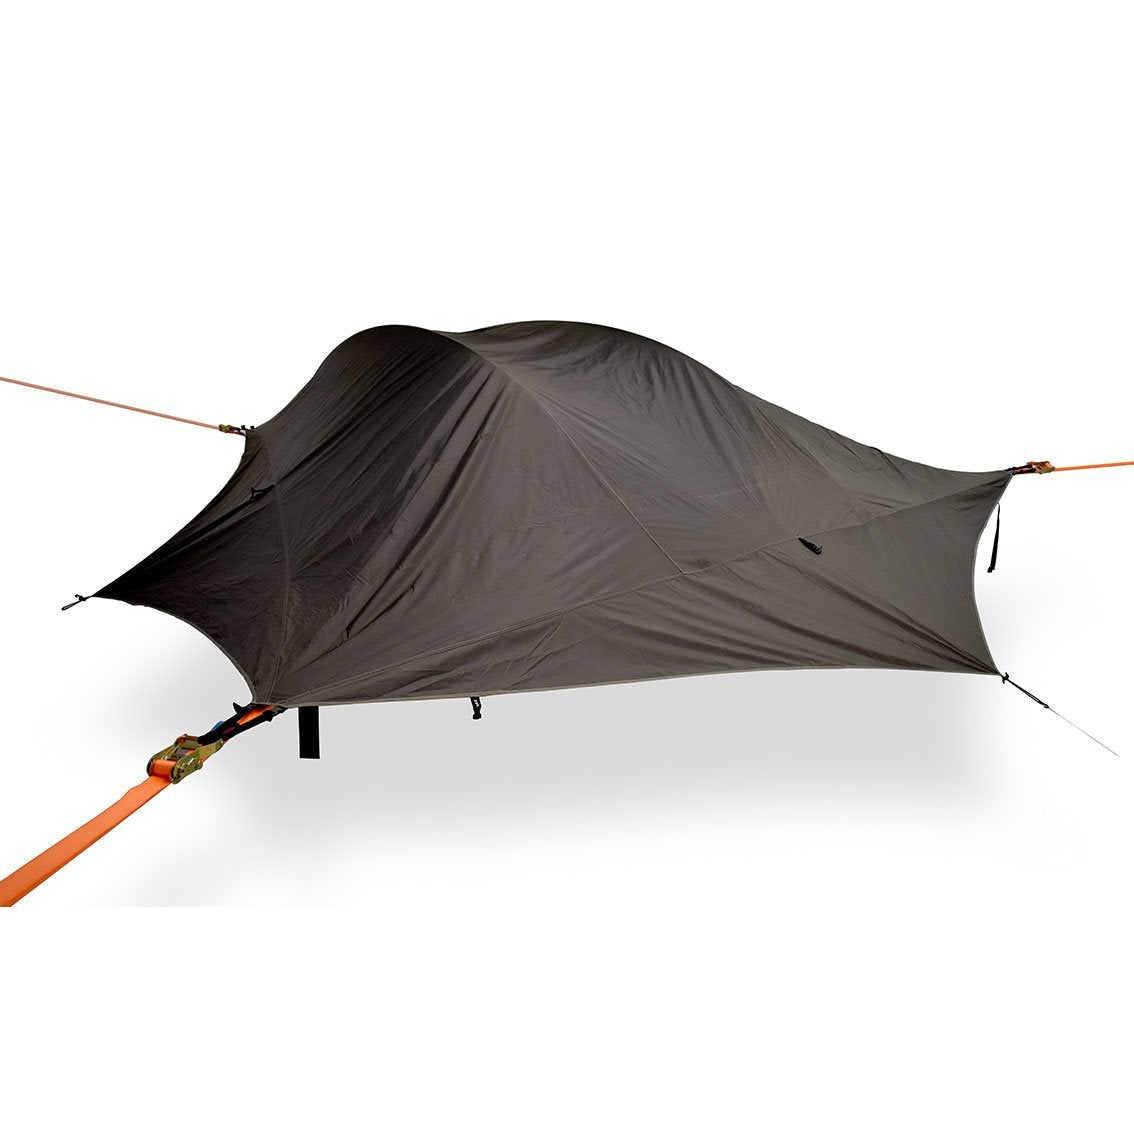 Tentsile | Safari Stingray Tree Tent | Robust 3 Man Suspended Hammock Tent